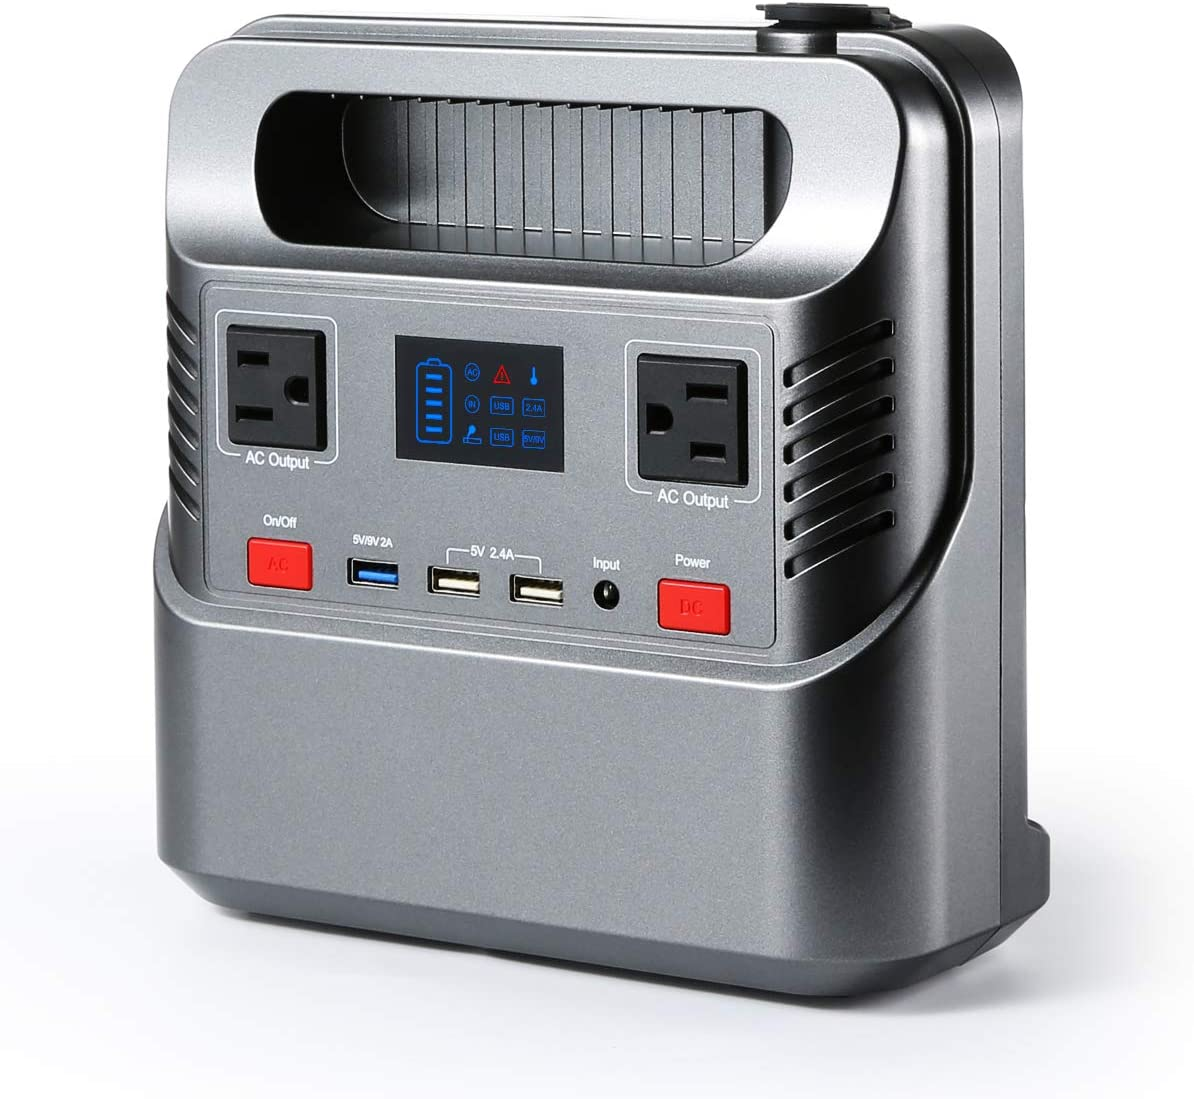 SOLAPOWER 750W Generator Portable Power Station- UPS 750W Continuous 1000W Peak -Lithium Battery Inverter with 110V AC Outlet, 4 DC 12V Port, 4 USB, Solar Generators for Camping CPAP Emergency Home